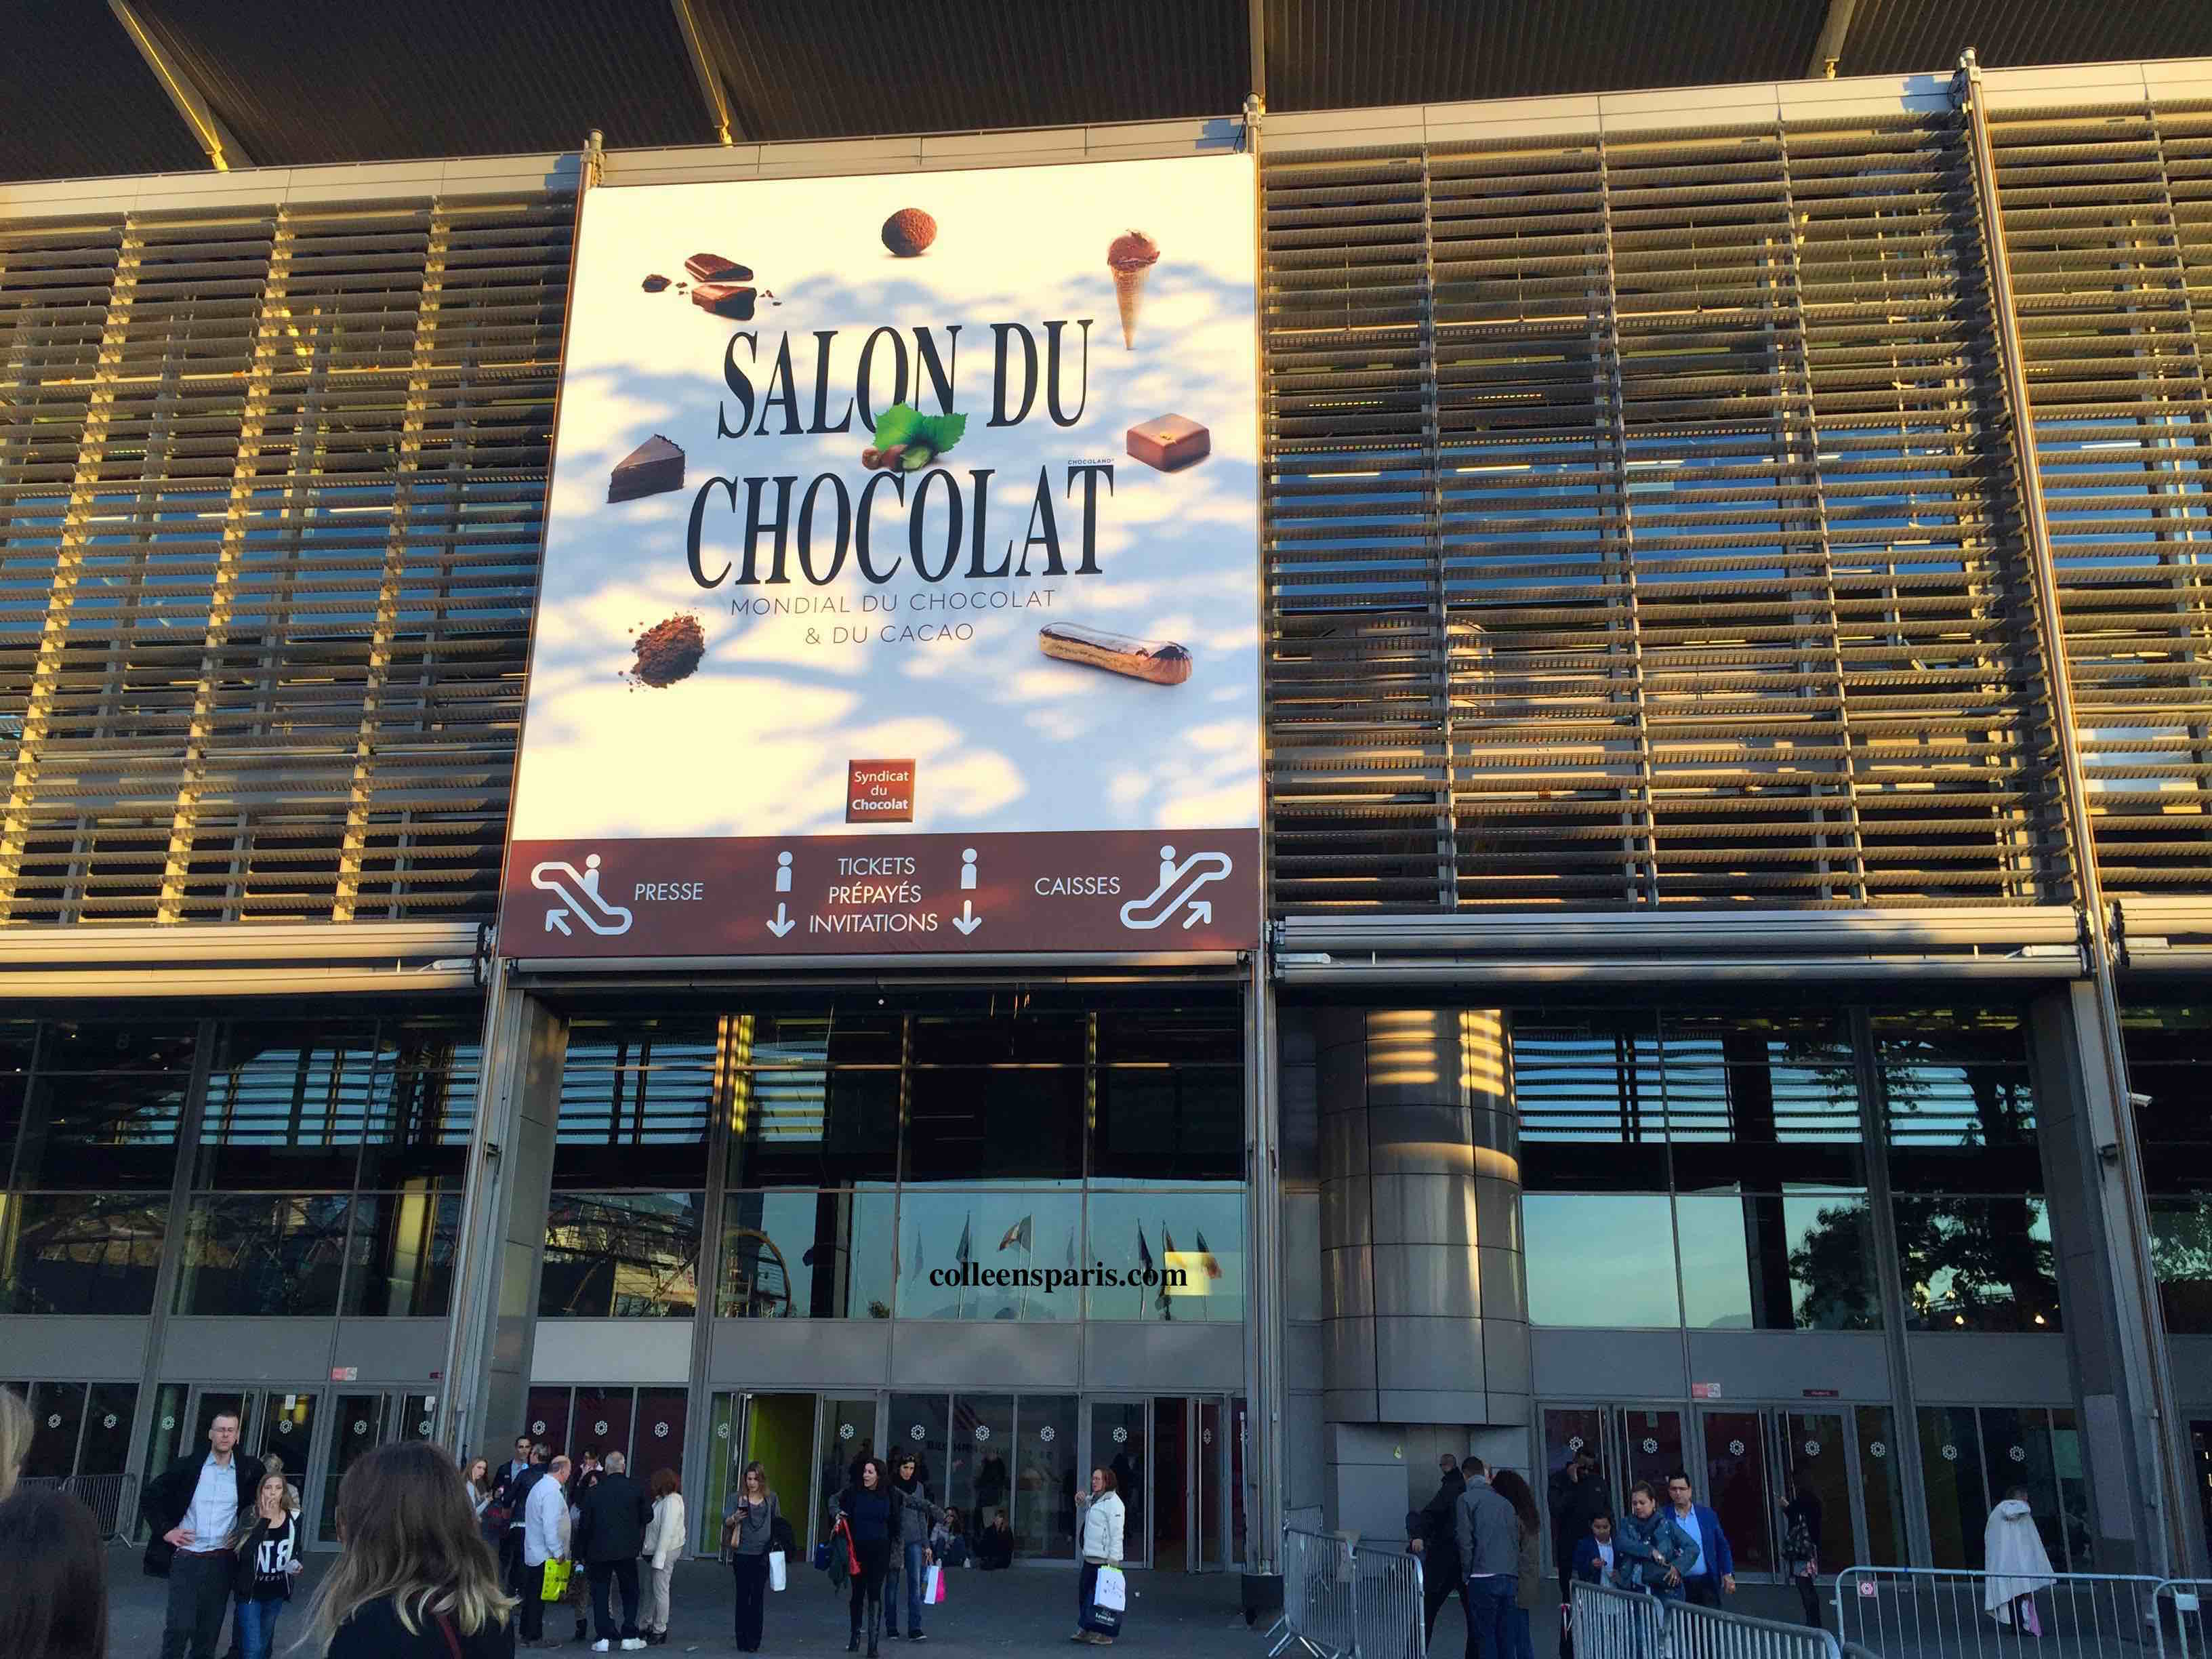 salon_du_chocolat_colleensparis_2063